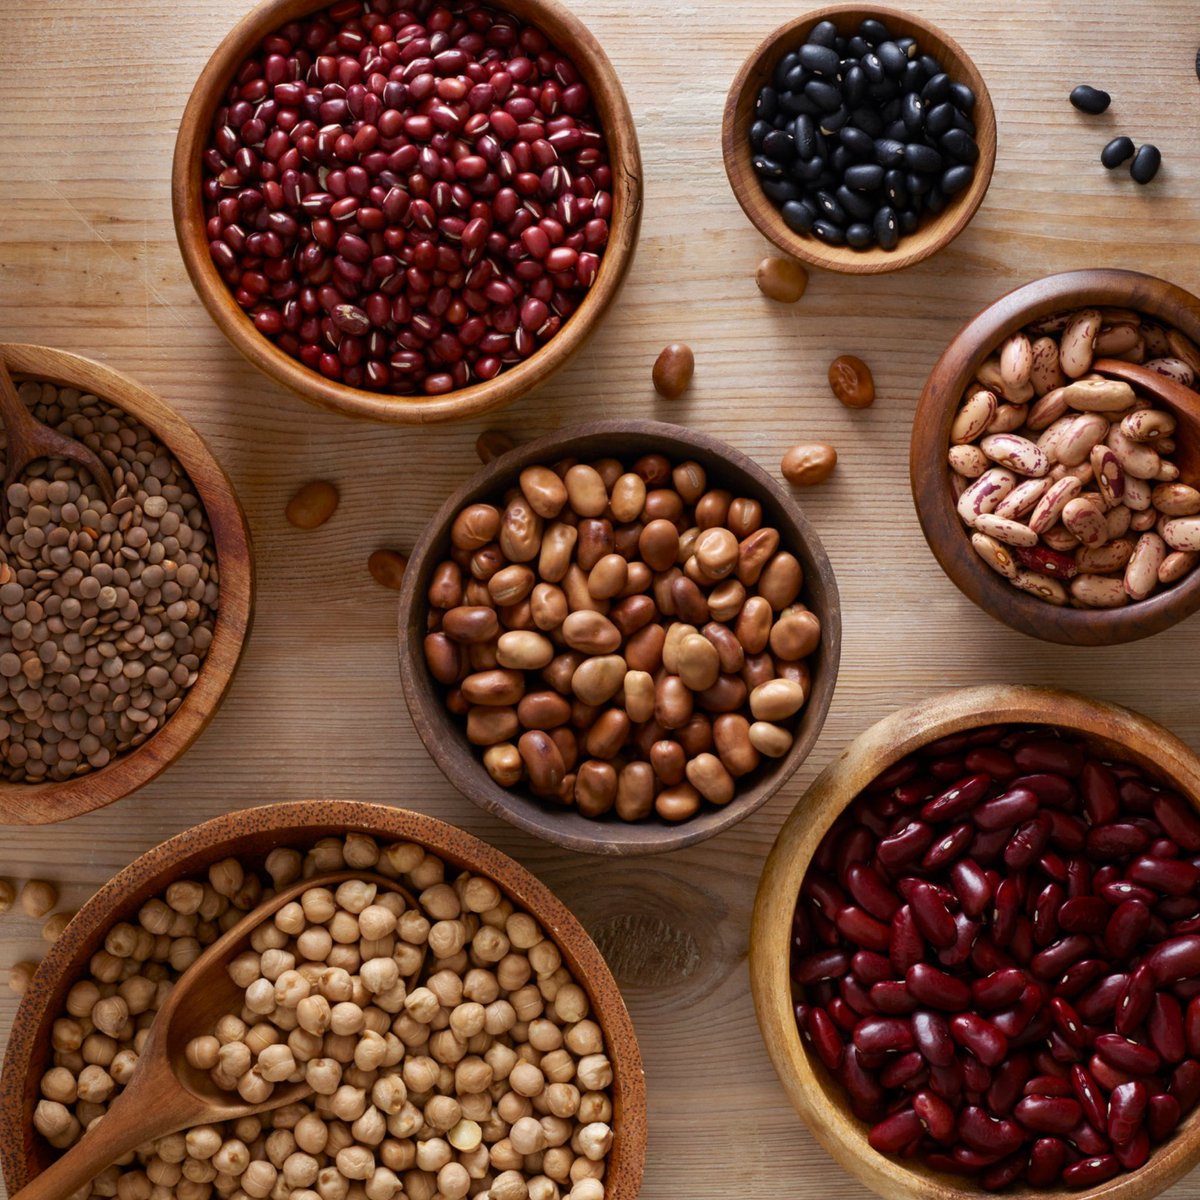 Pro tip—soaking beans overnight before cooking helps them be more digestible and delicious! #protip #cookingtips #beans #beansoup #beanrecipes #beansandrice #beansalad #bbq #colorado #denver #gourmetfood #icantwait #endlesspossibilities #cookingfromscratch #ilovefoodtoomuch https://t.co/WPOA6Uj0RB